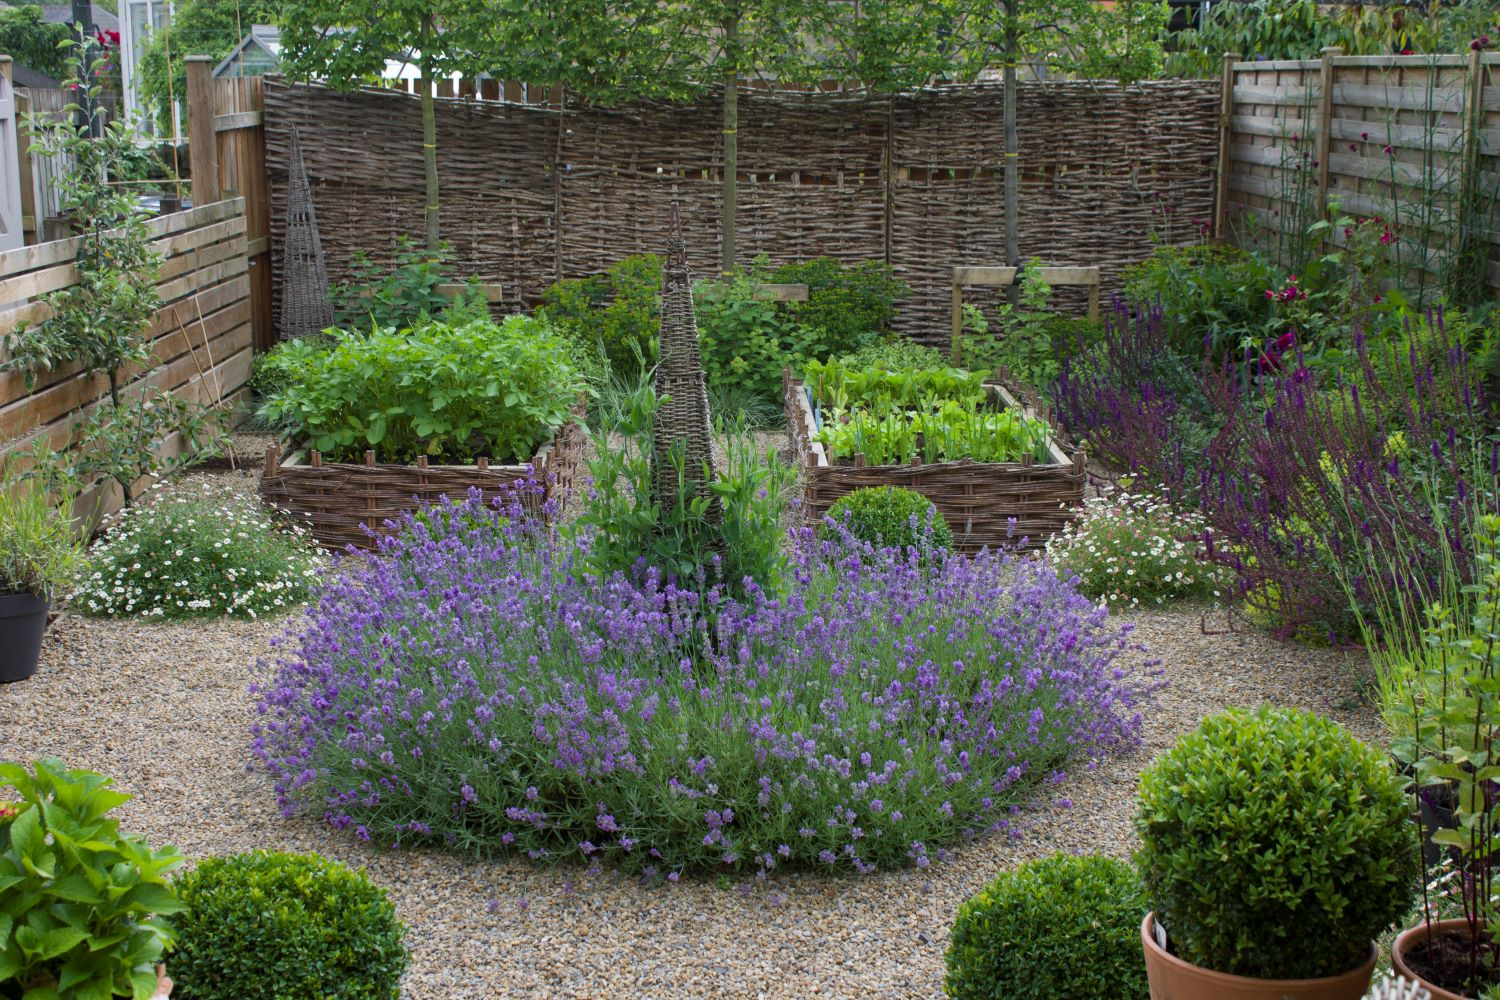 Small potager (decorative vegetable garden) with willow hurdle raised beds and a willow obelisk